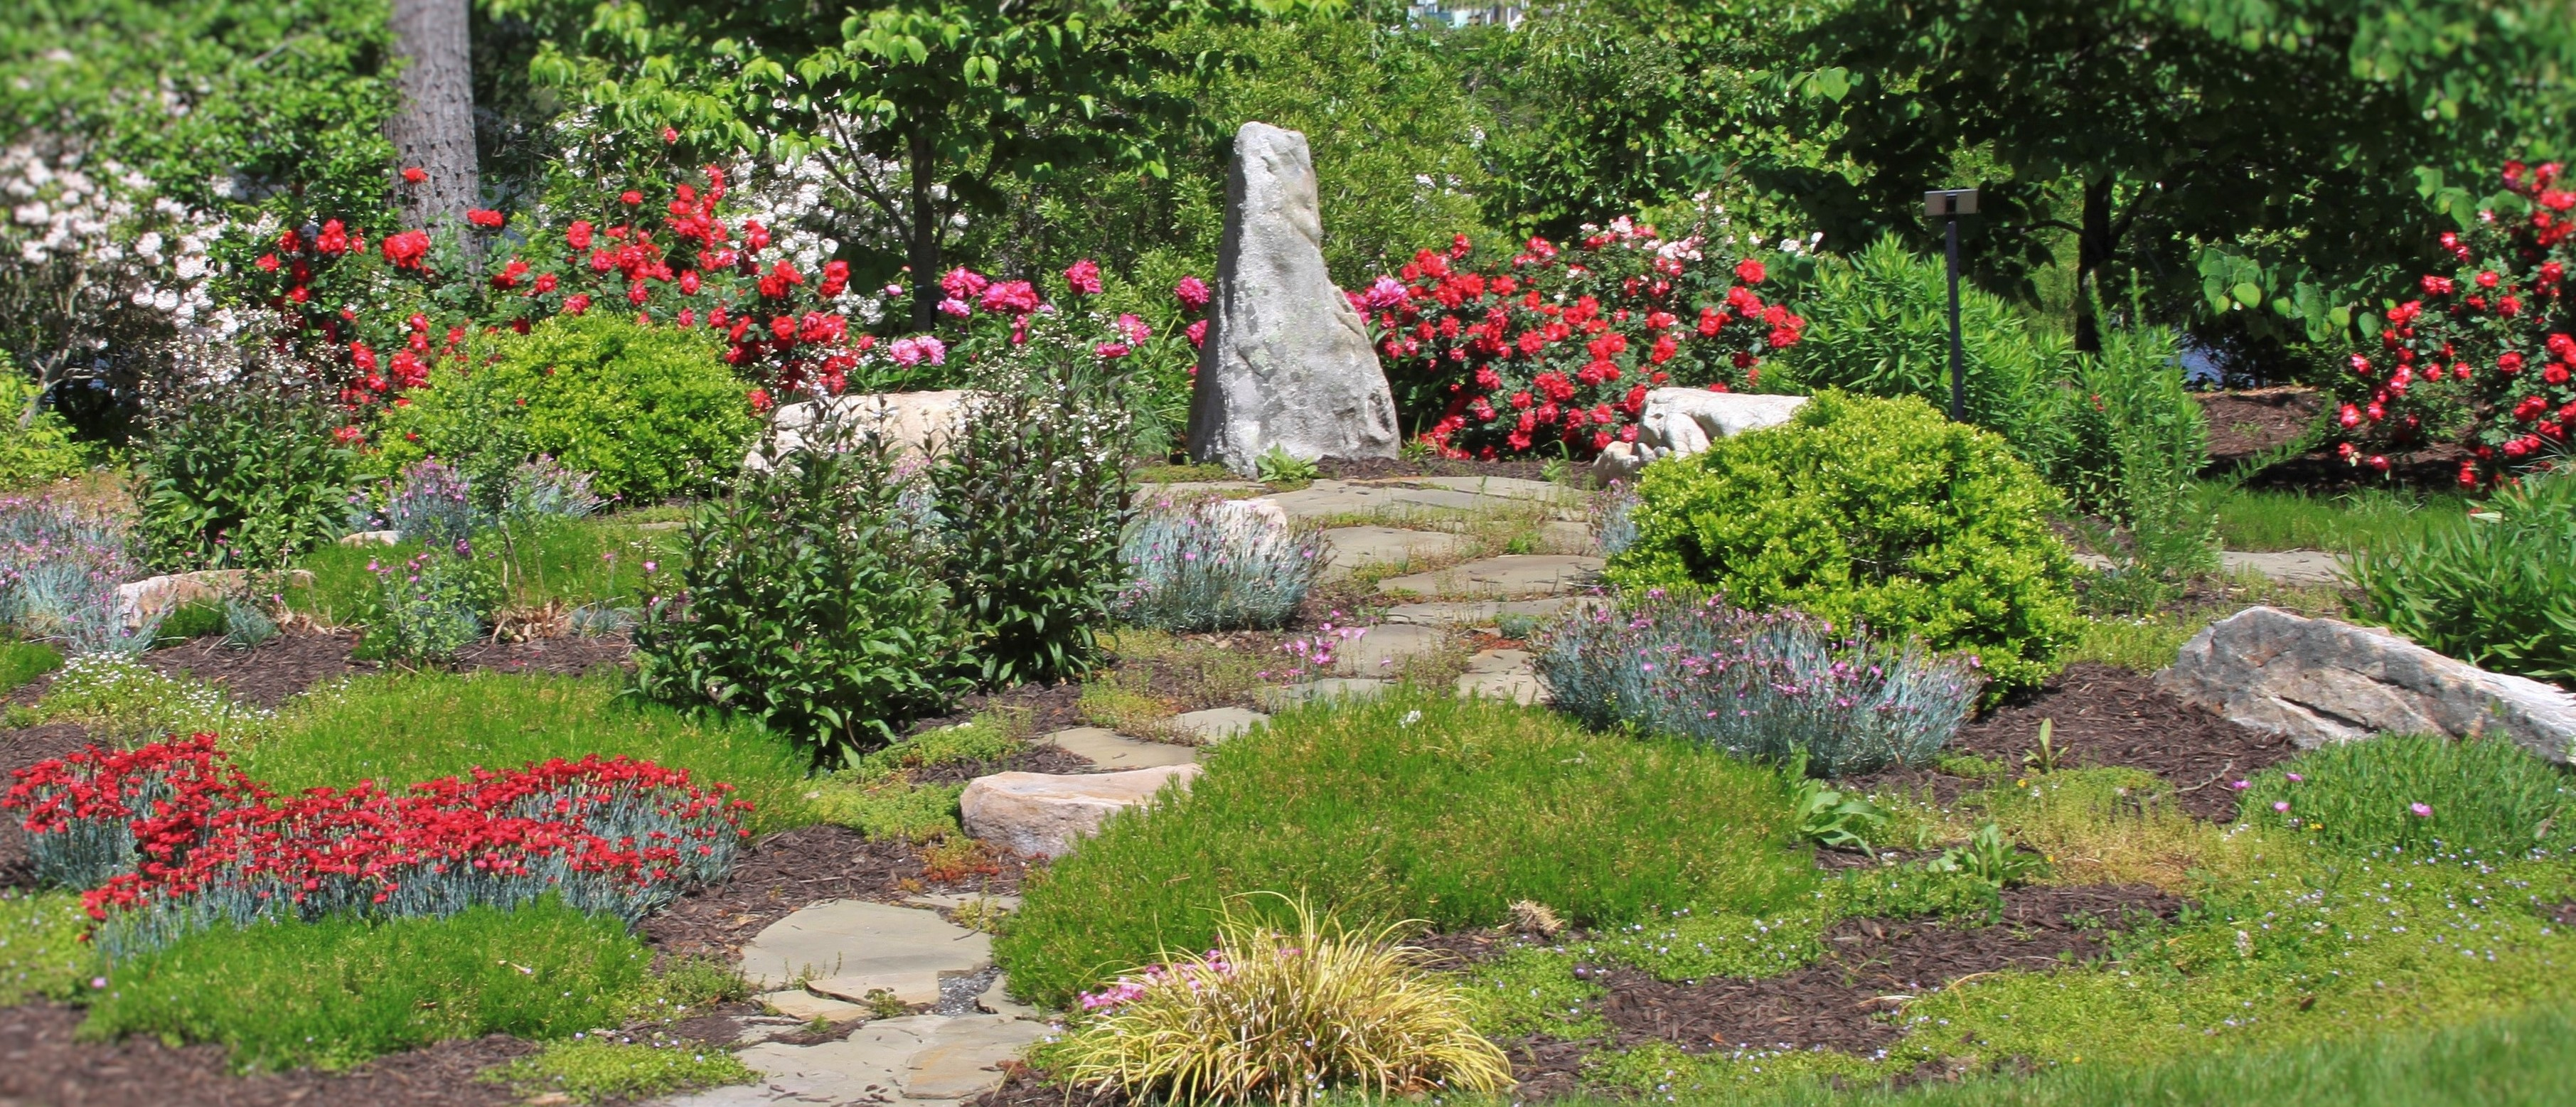 Sheehan Rock Garden